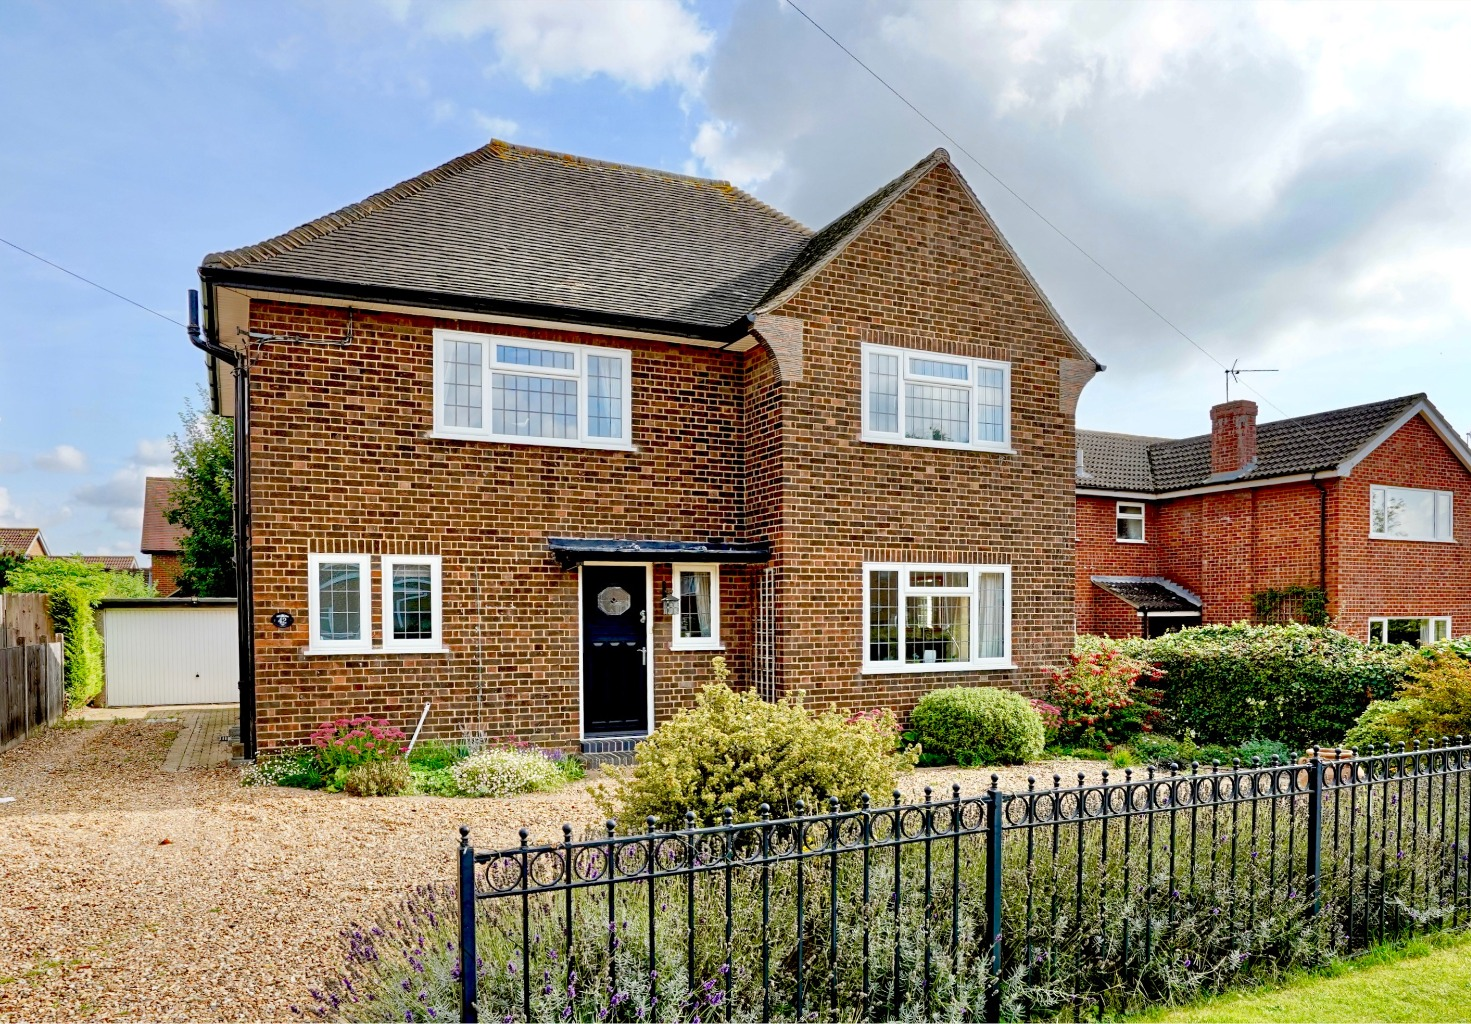 3 bed  for sale in Lucks Lane, St. Neots, PE19